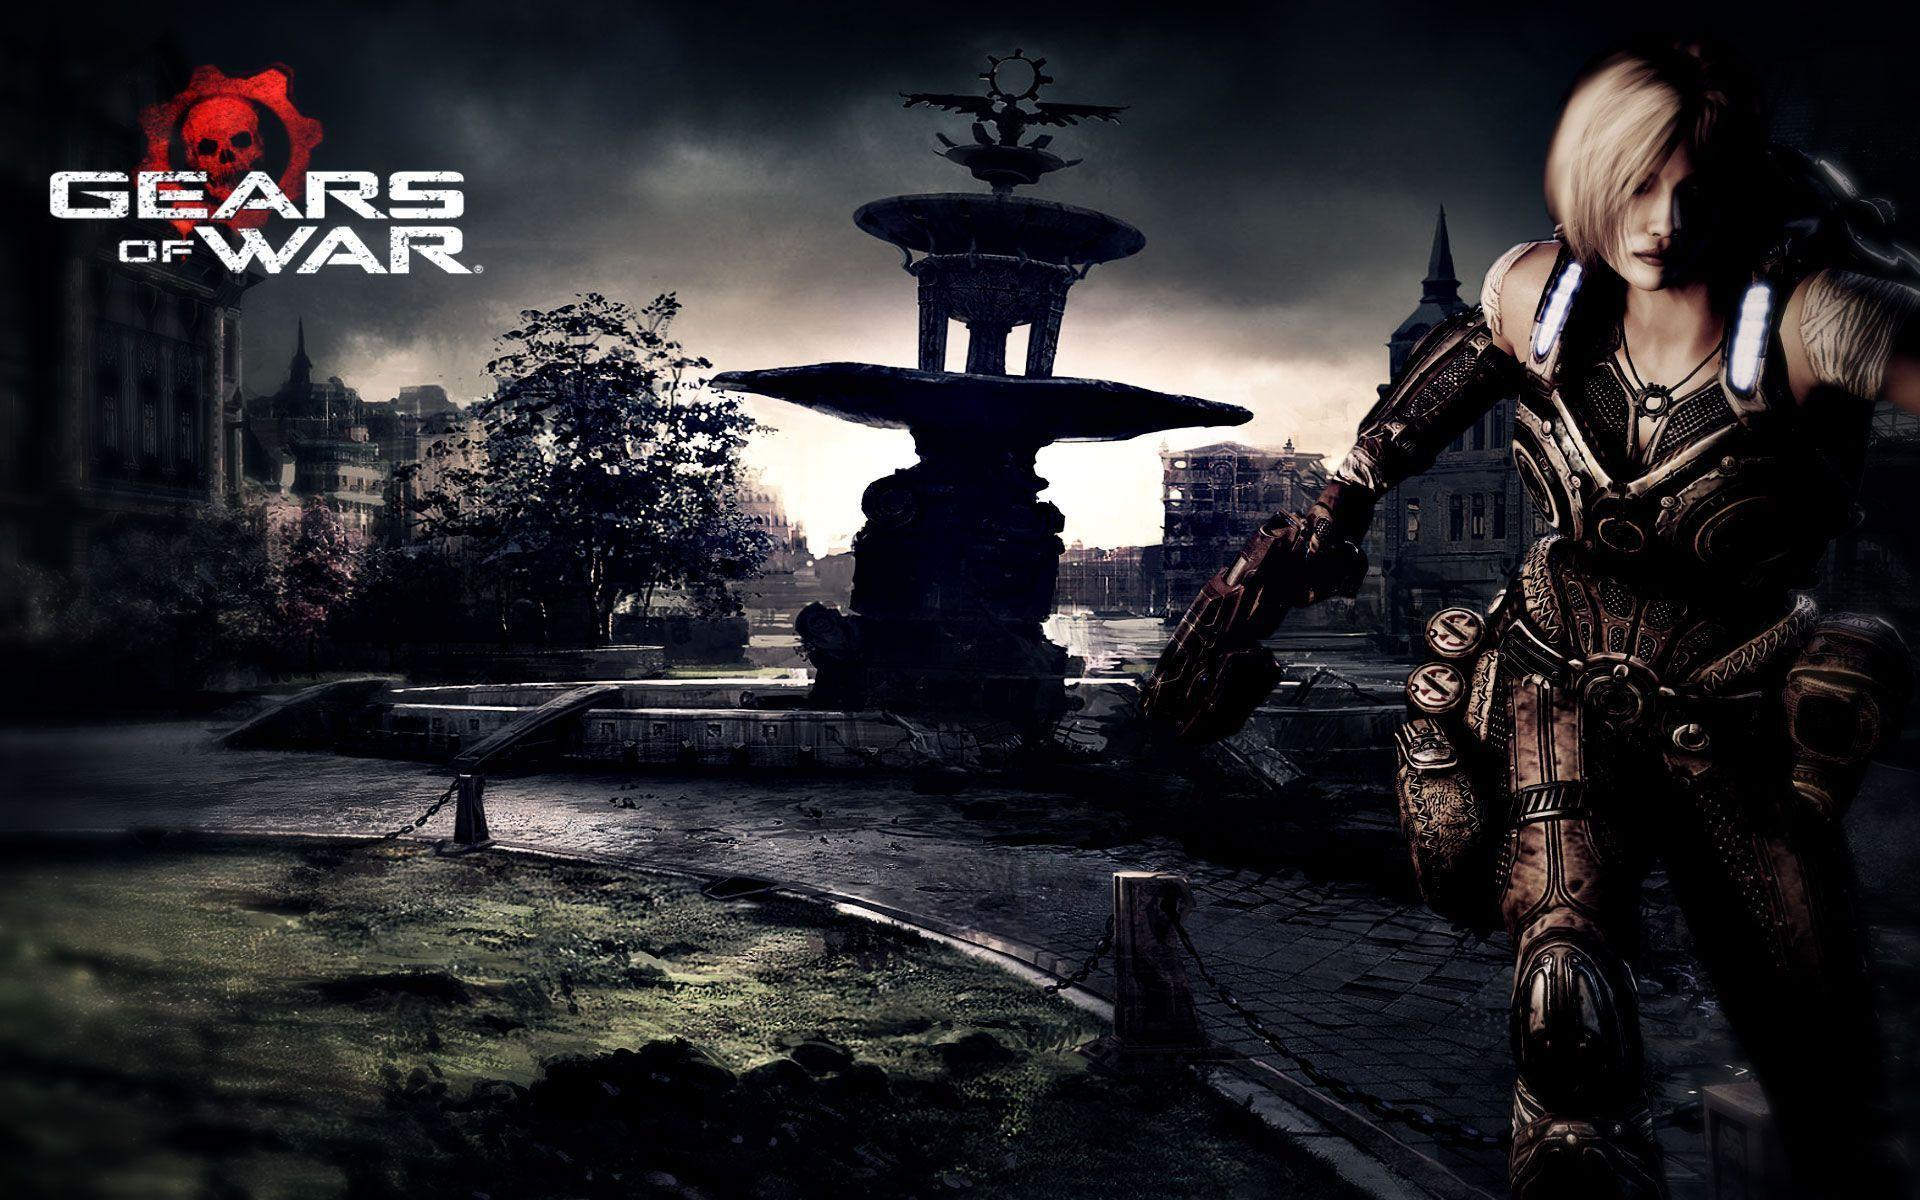 Gears Of War 3 Hd Wallpapers For Android: Gears Of War 3 Wallpapers